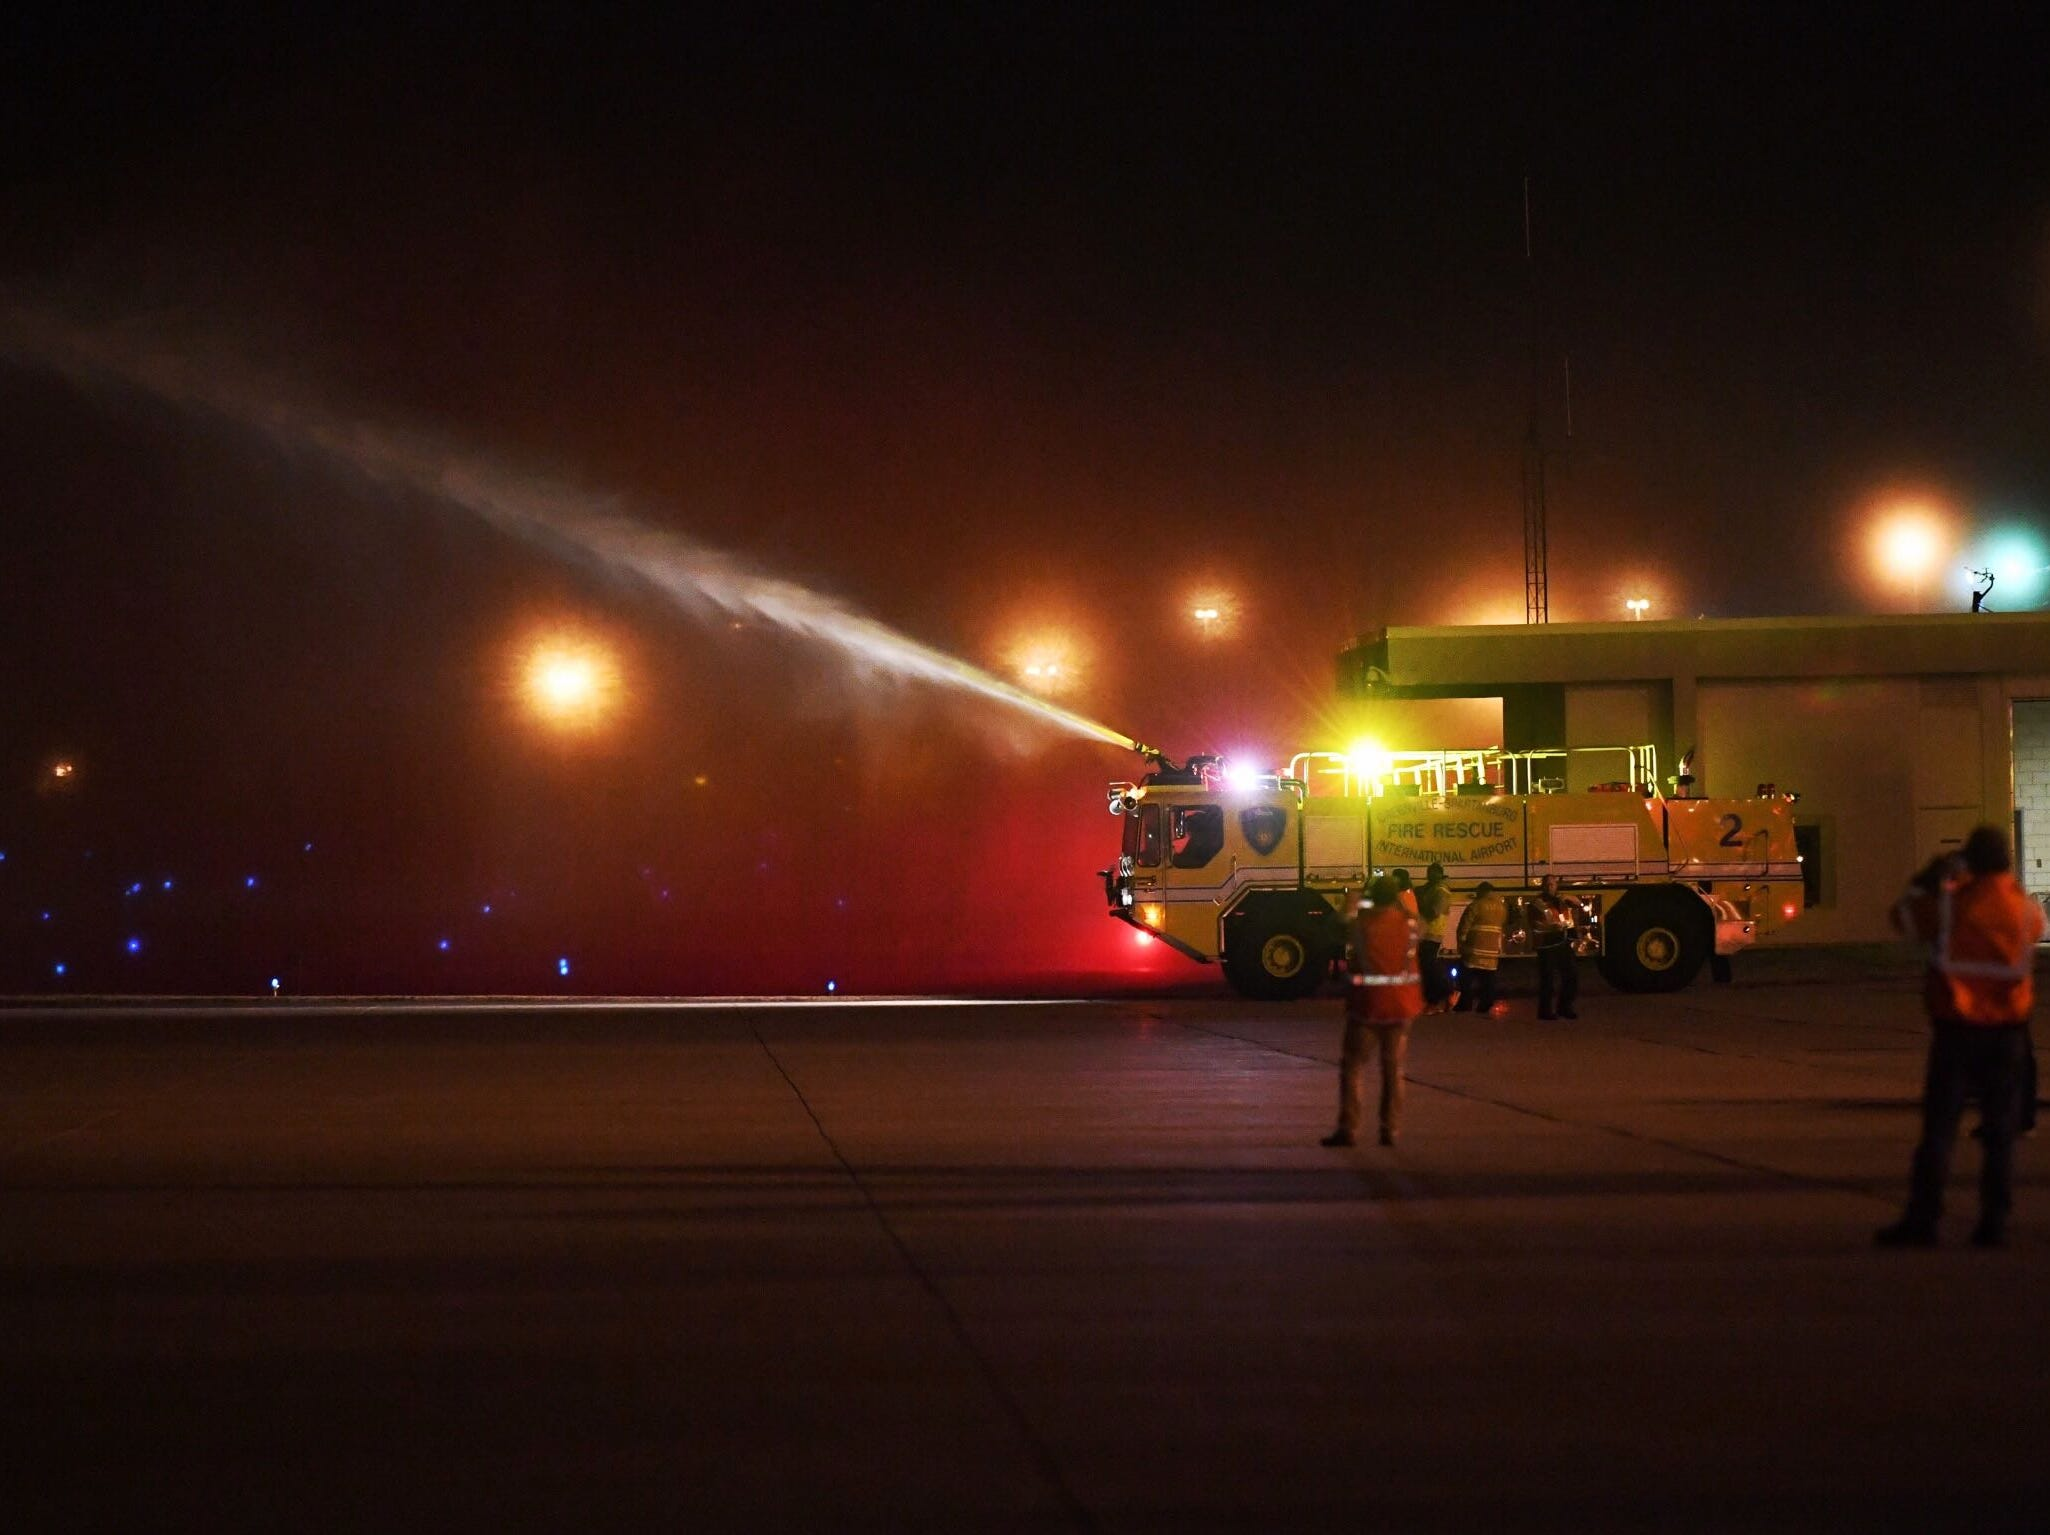 The plane carrying Clemson players and coaches was given a firetruck salute after arriving at Greenville-Spartanburg International Airport on Tuesday night.